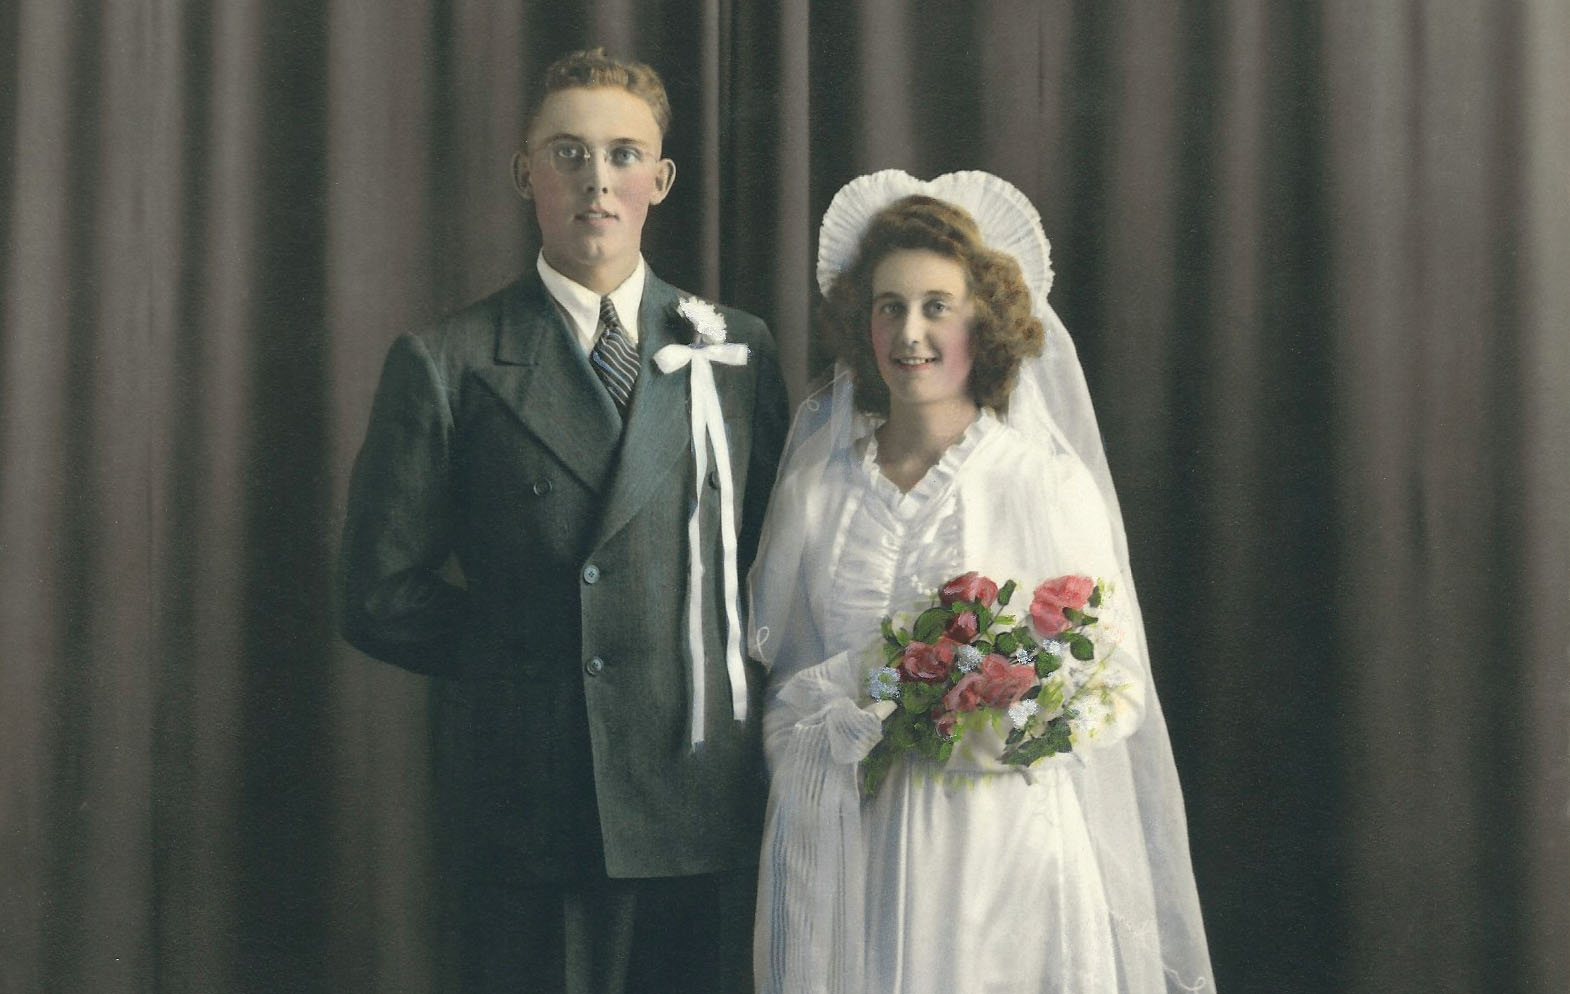 Peter and Marge were wedded in an era when marriages lasted a lifetime.Photos courtesy Shelley Lepp